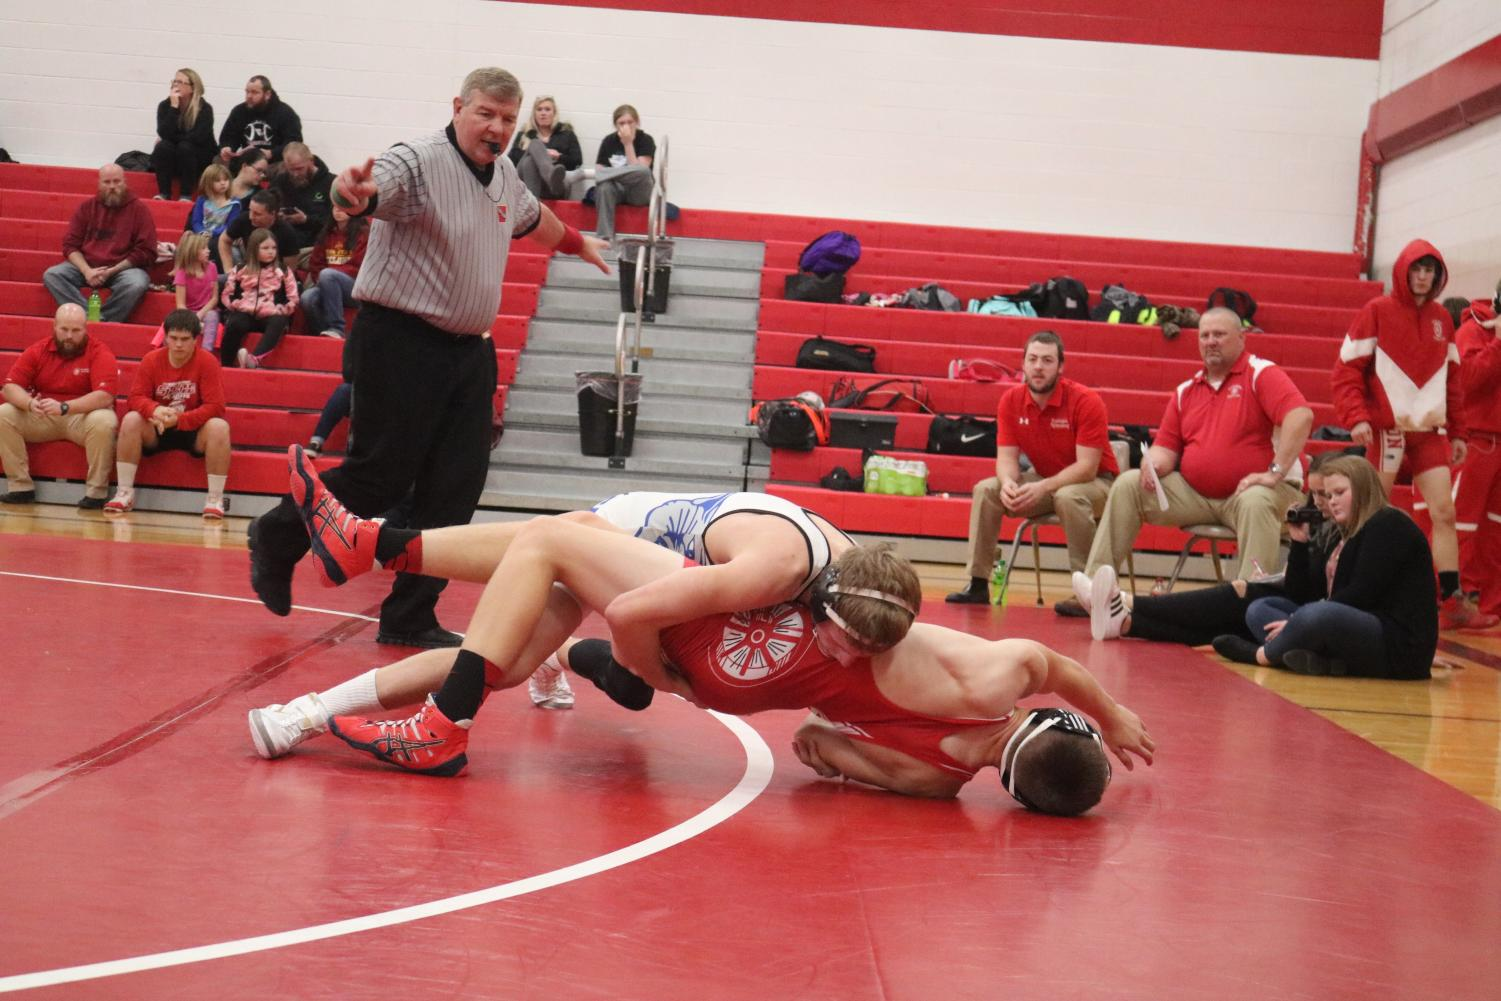 WATCH THE LINE - Senior Chase McLaren edges his way off the mat with an opponent. McLaren ended the night with one pin.